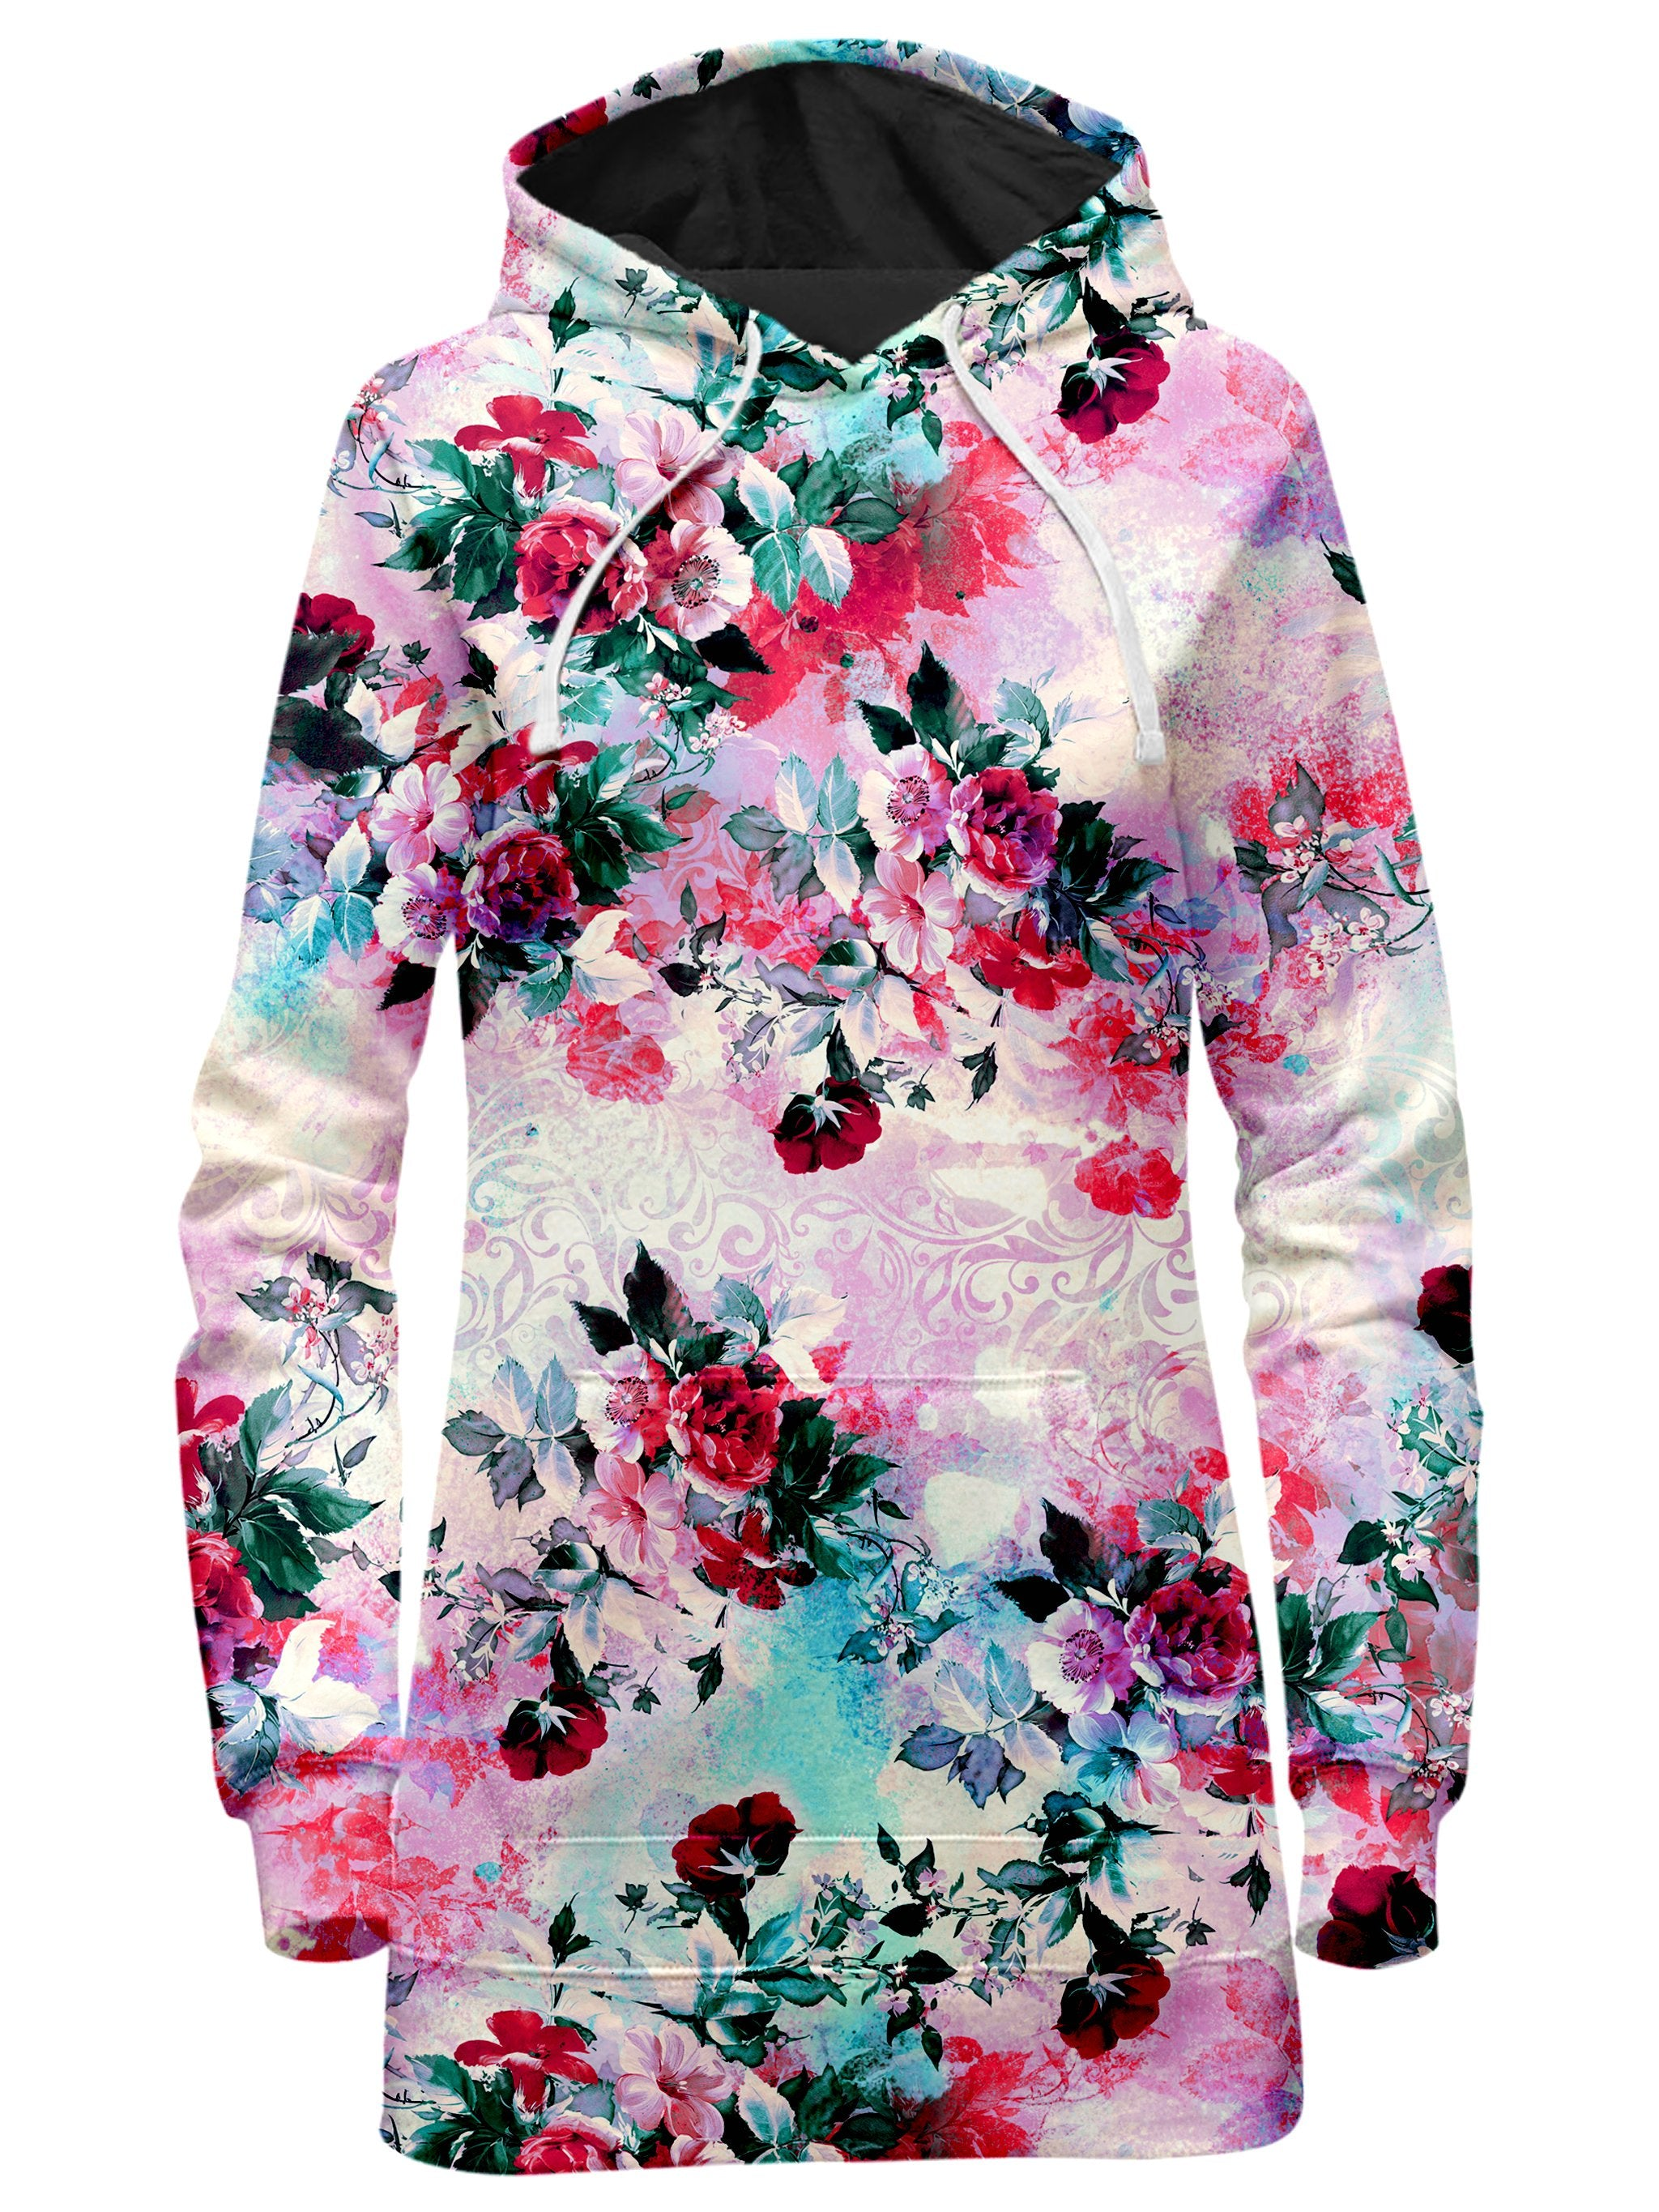 ALL-HoodieDress-Front-PinkFloral-2048x2730.jpg v 1549349745 6a07f1786